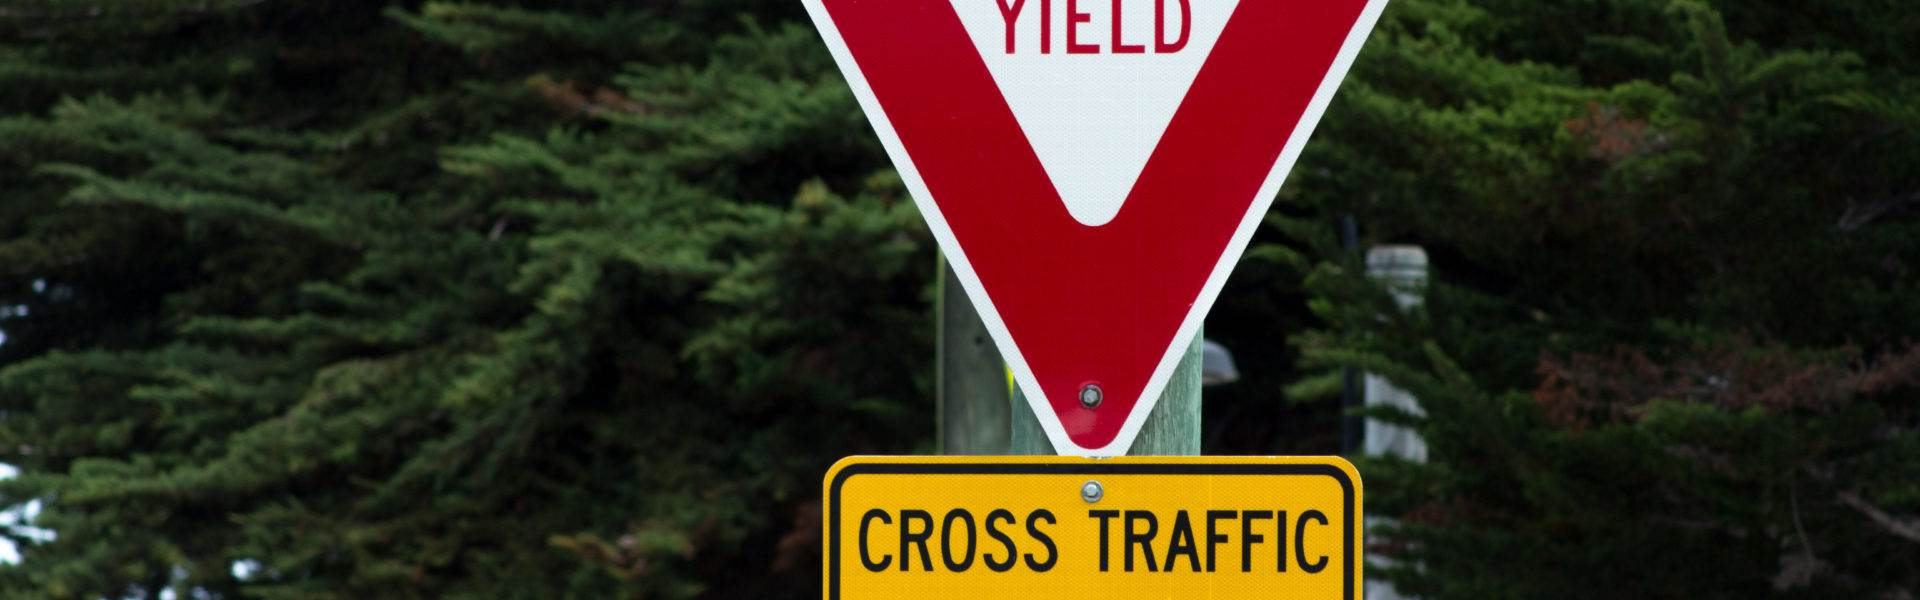 photo of a yield traffic sign